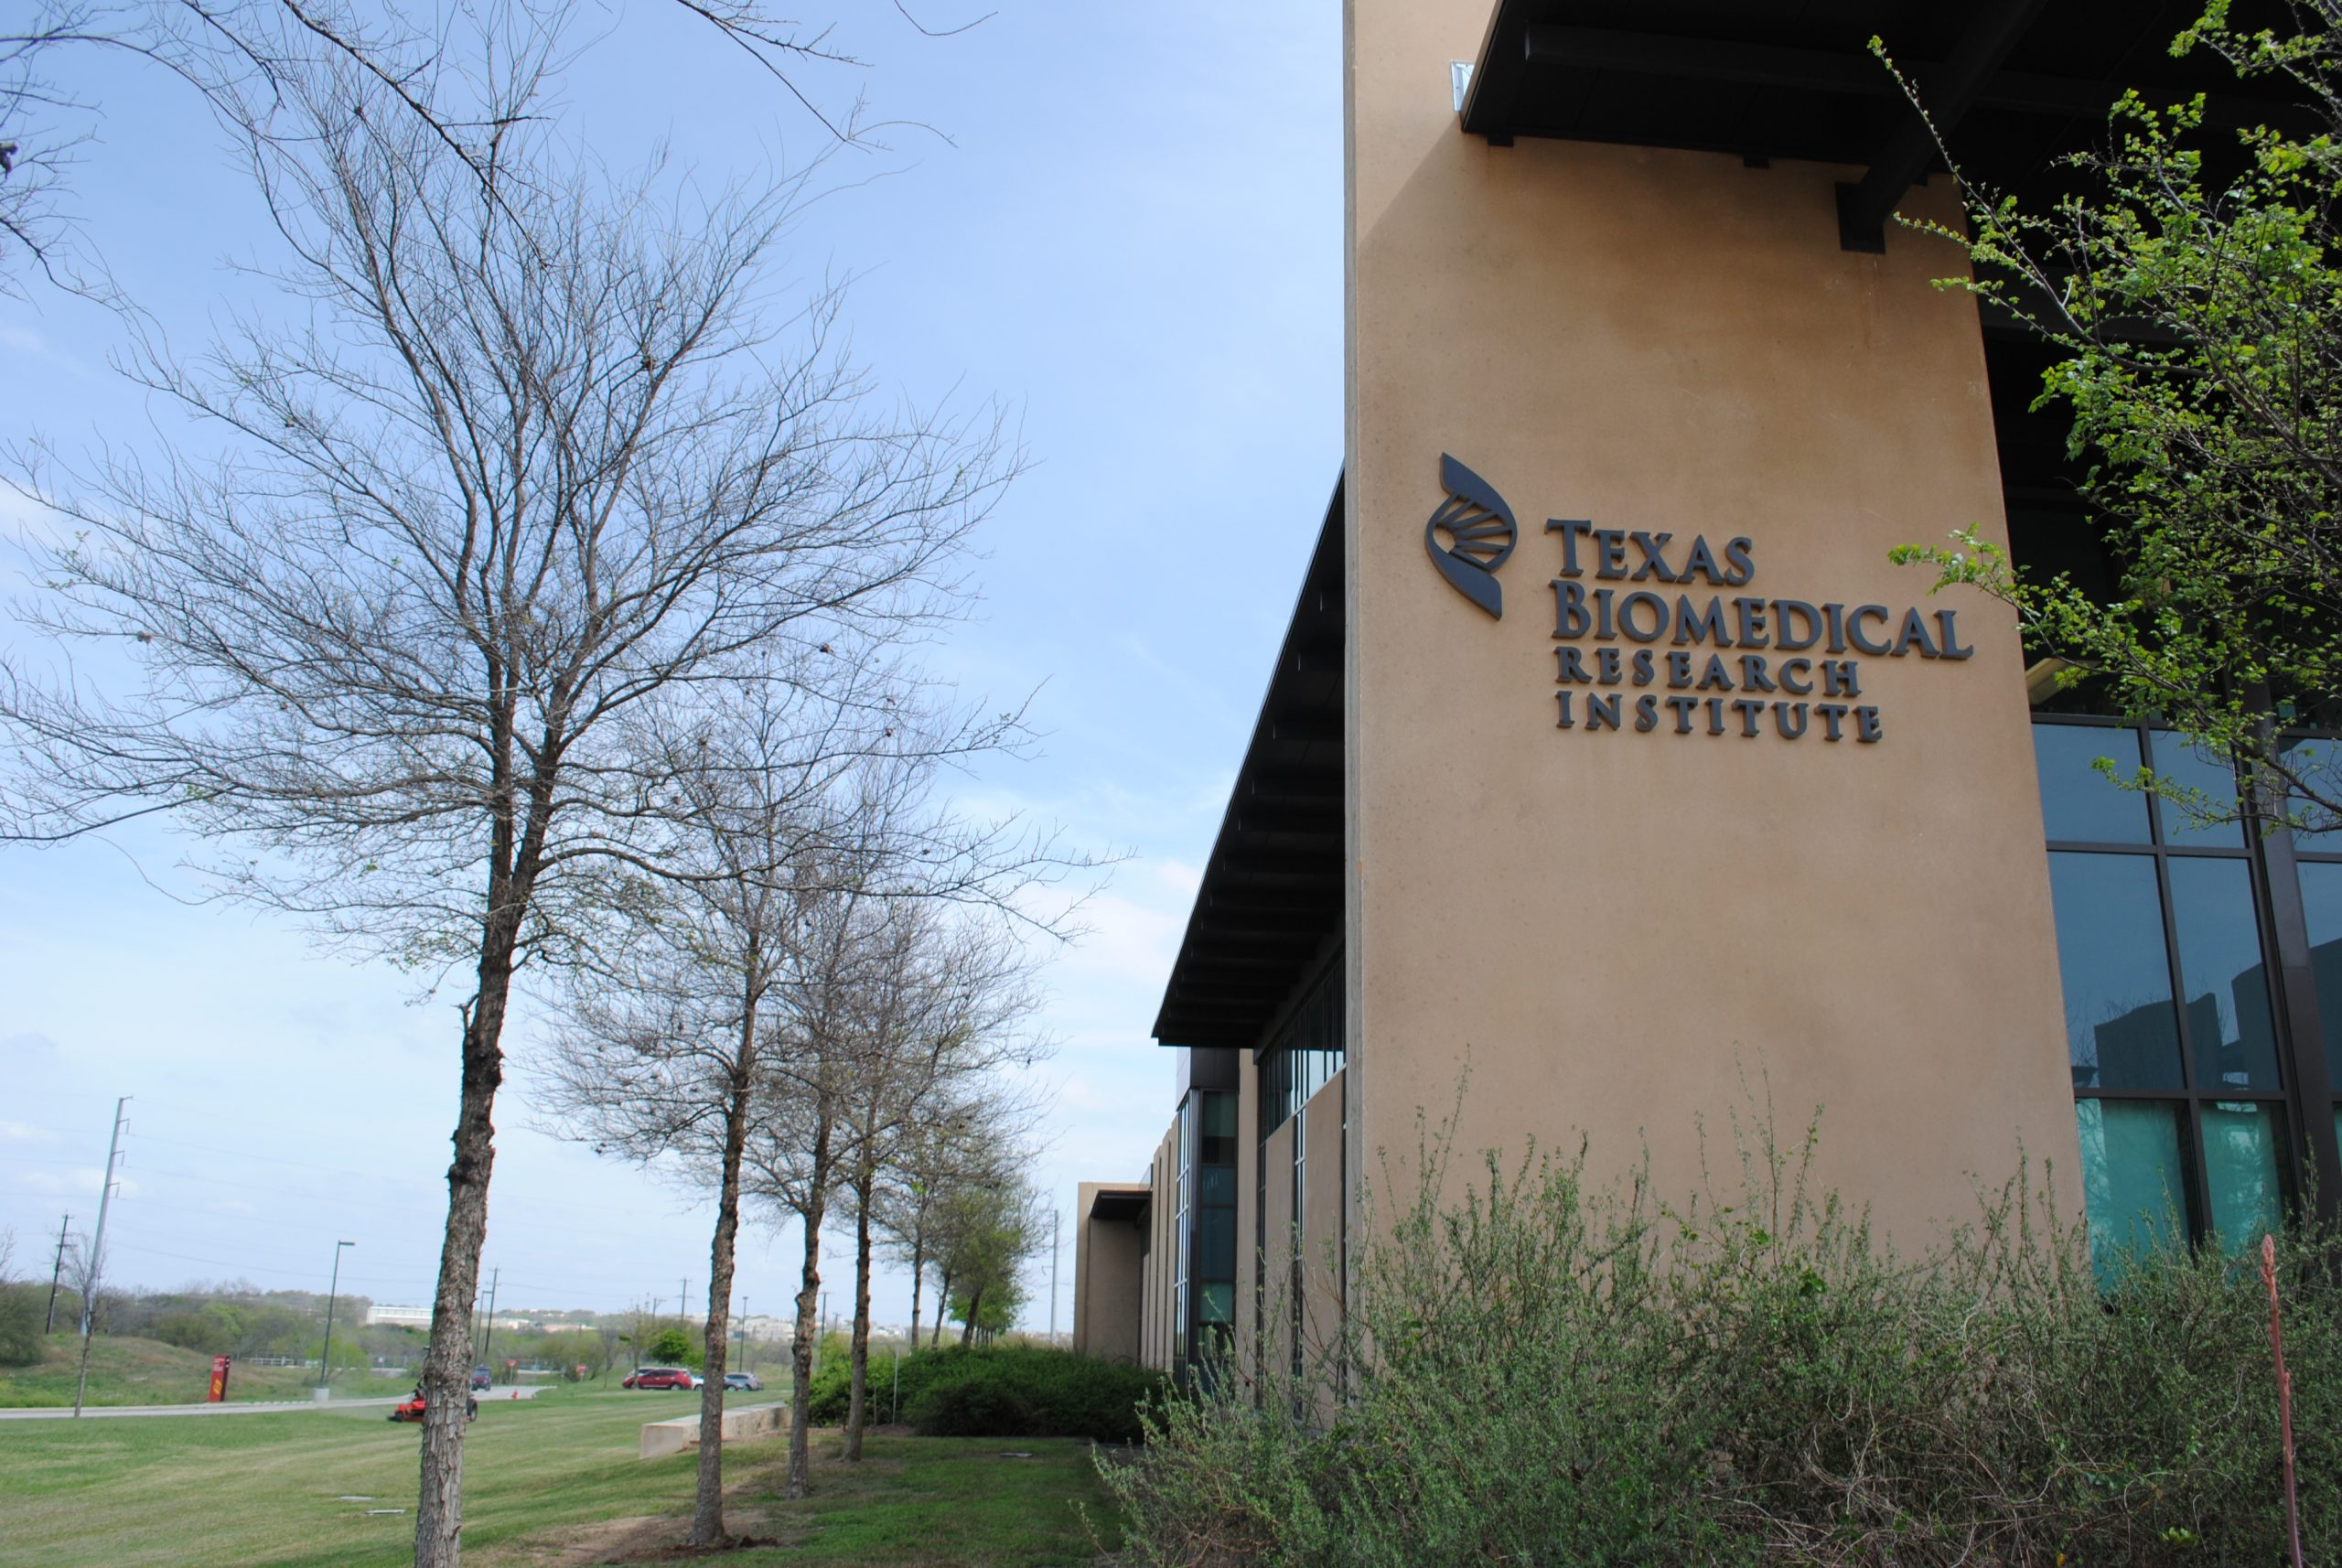 Texas BioMed Hires Will Focus on Commercialization Strategy for Infectious Disease Research